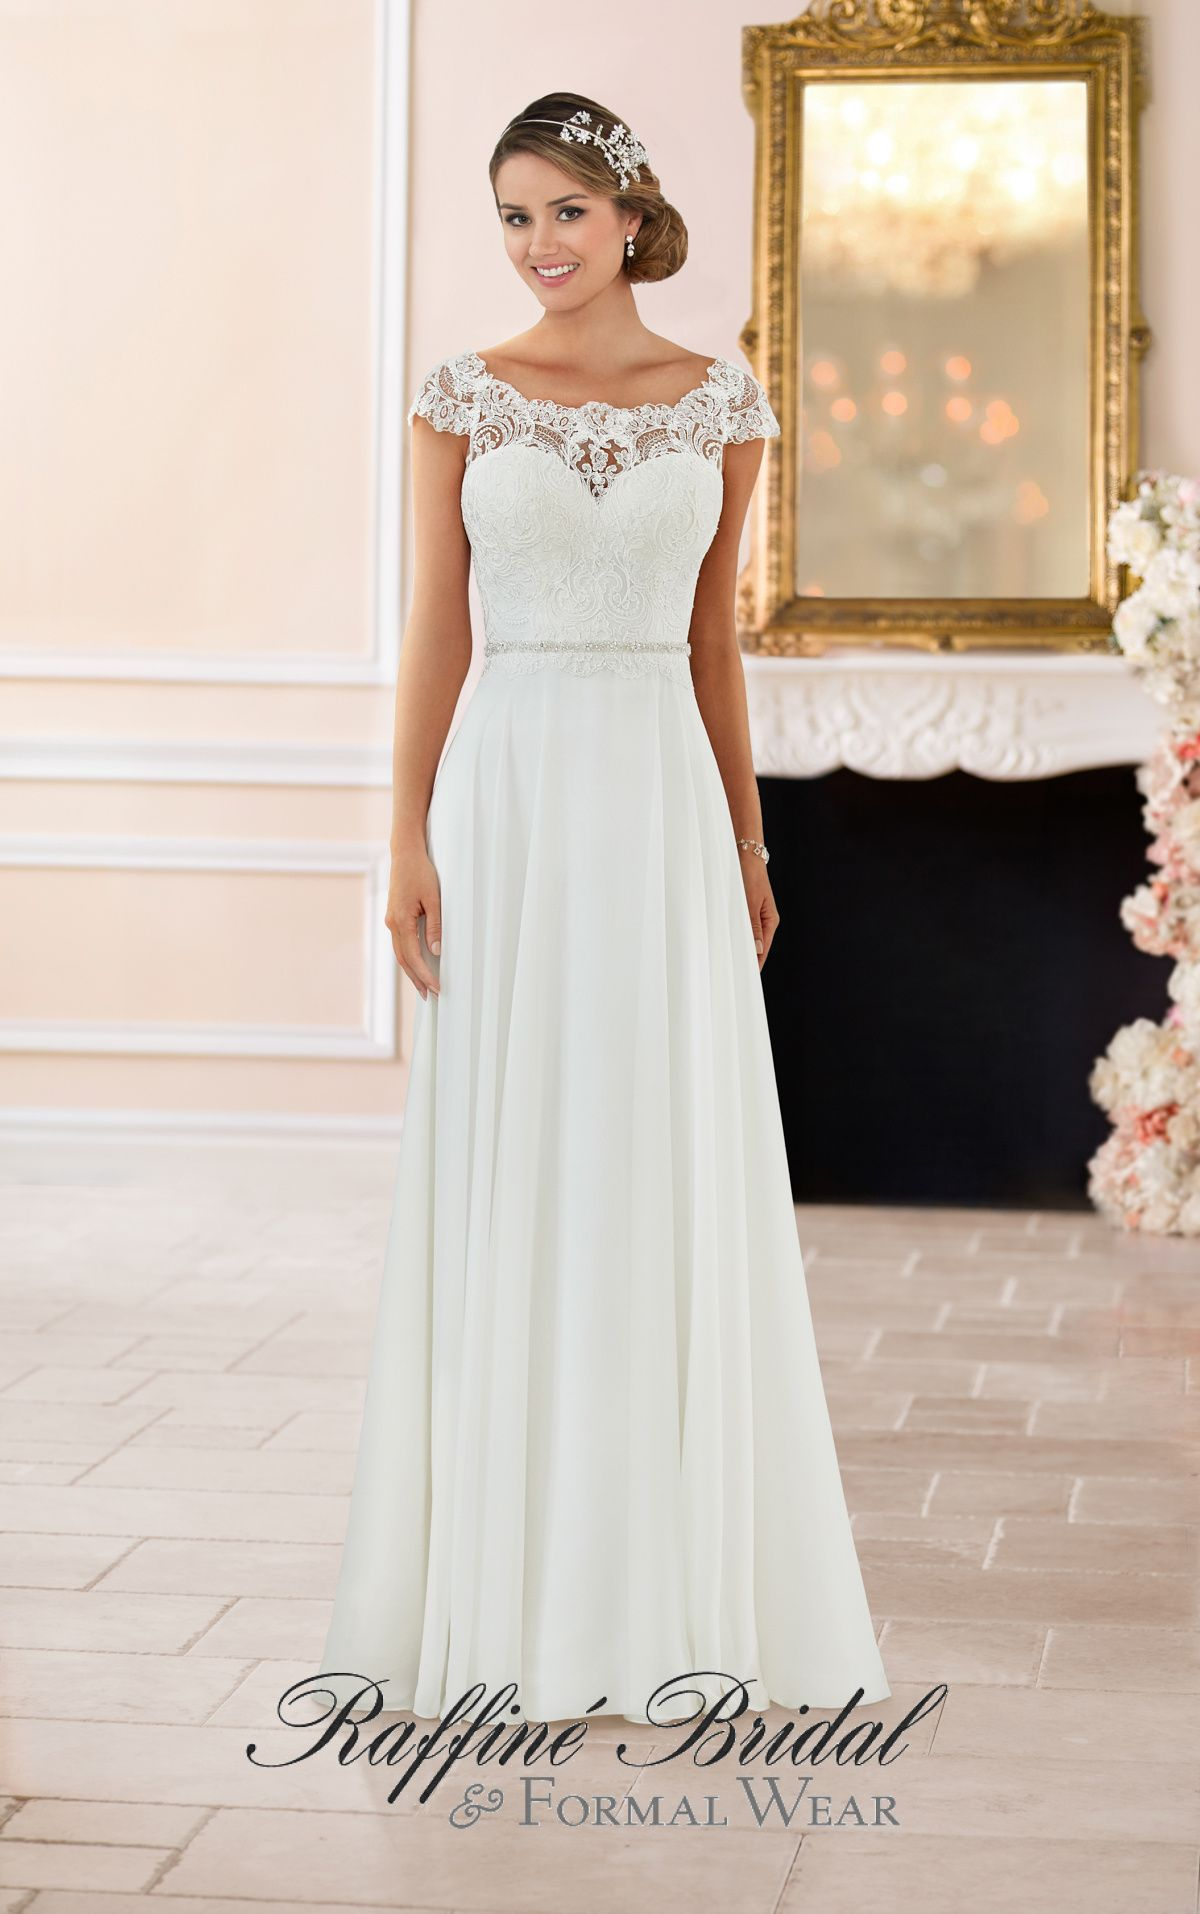 Stella york 6365 this off the shoulder lace back wedding dress stella york 6365 this off the shoulder lace back wedding dress features a mix ombrellifo Gallery